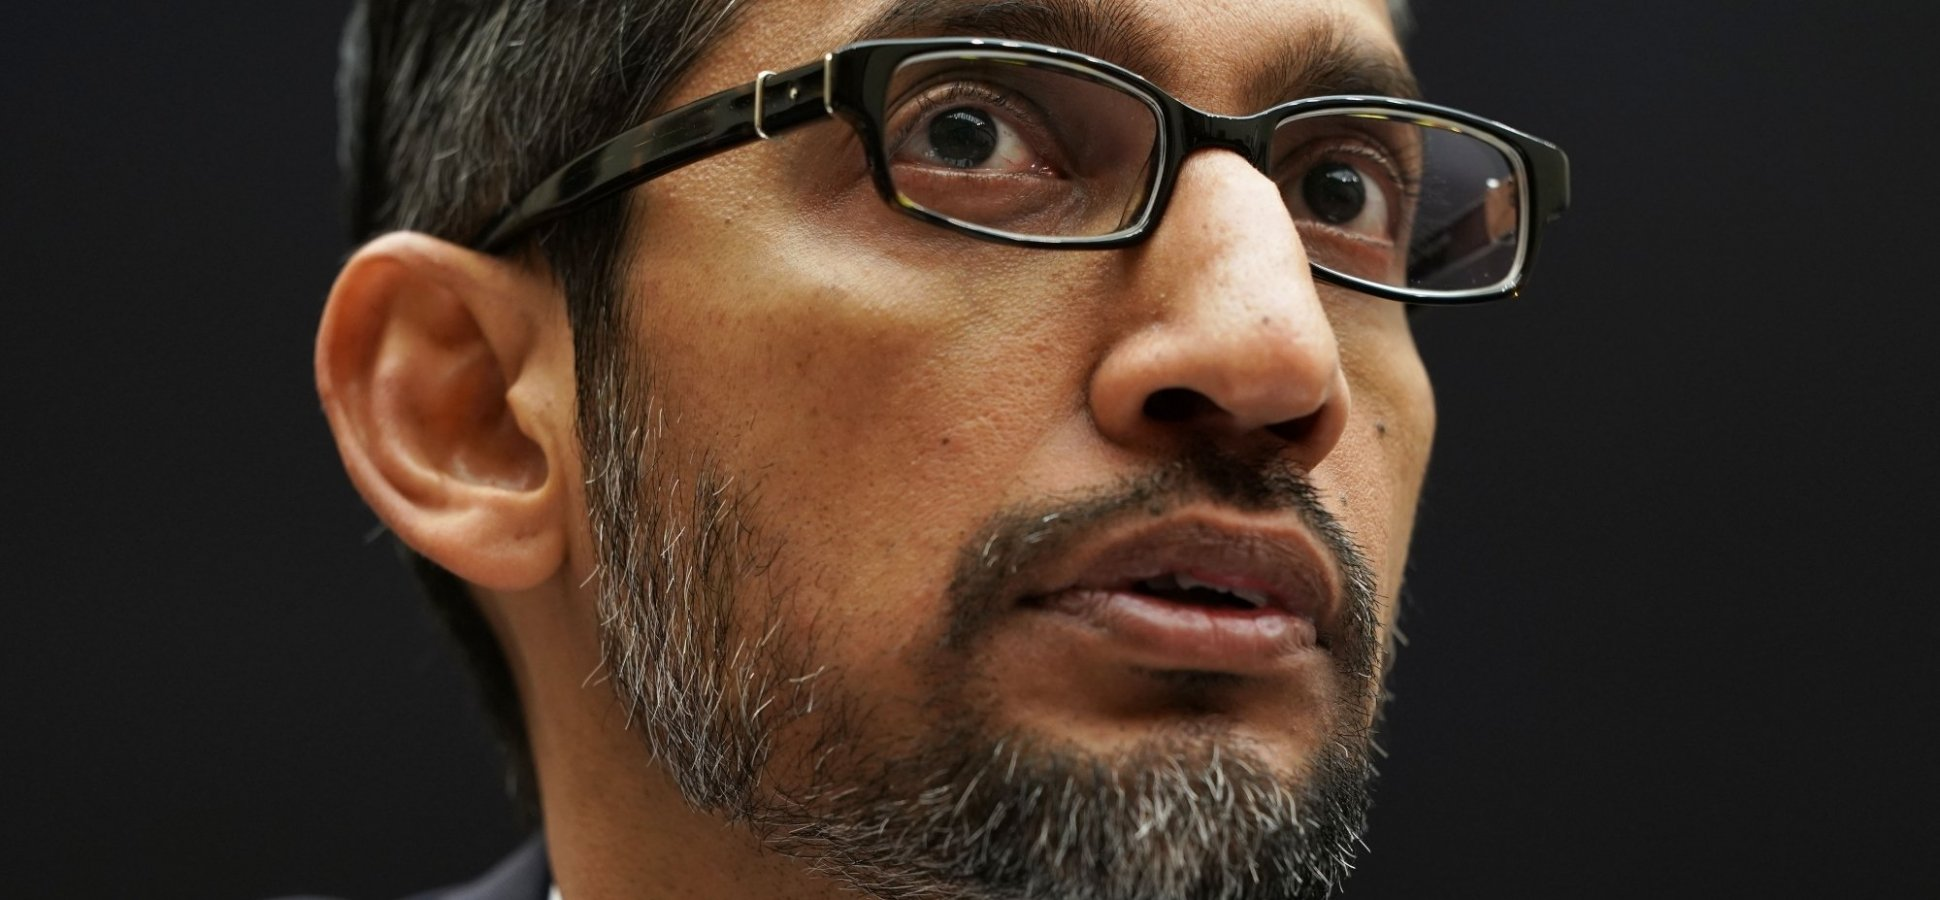 Google CEO Sundar Pichai Claims to Love Small Business. Does He Really?